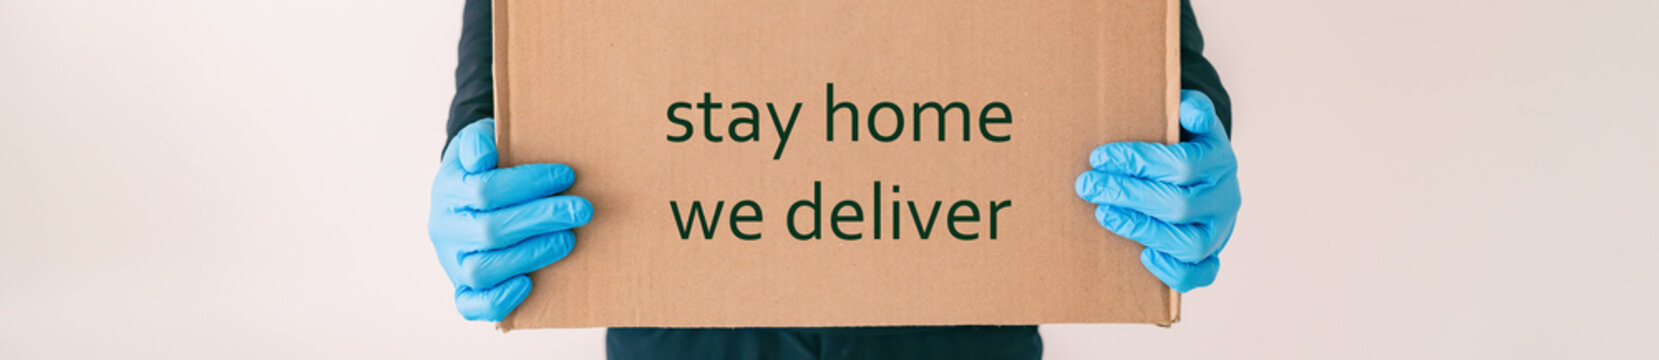 Home delivery with quote STAY HOME WE DELIVER on cardboard box banner. Food grocery delivered with gloves for COVID-19 quarantine from coronavirus social distancing. man giving purchase.